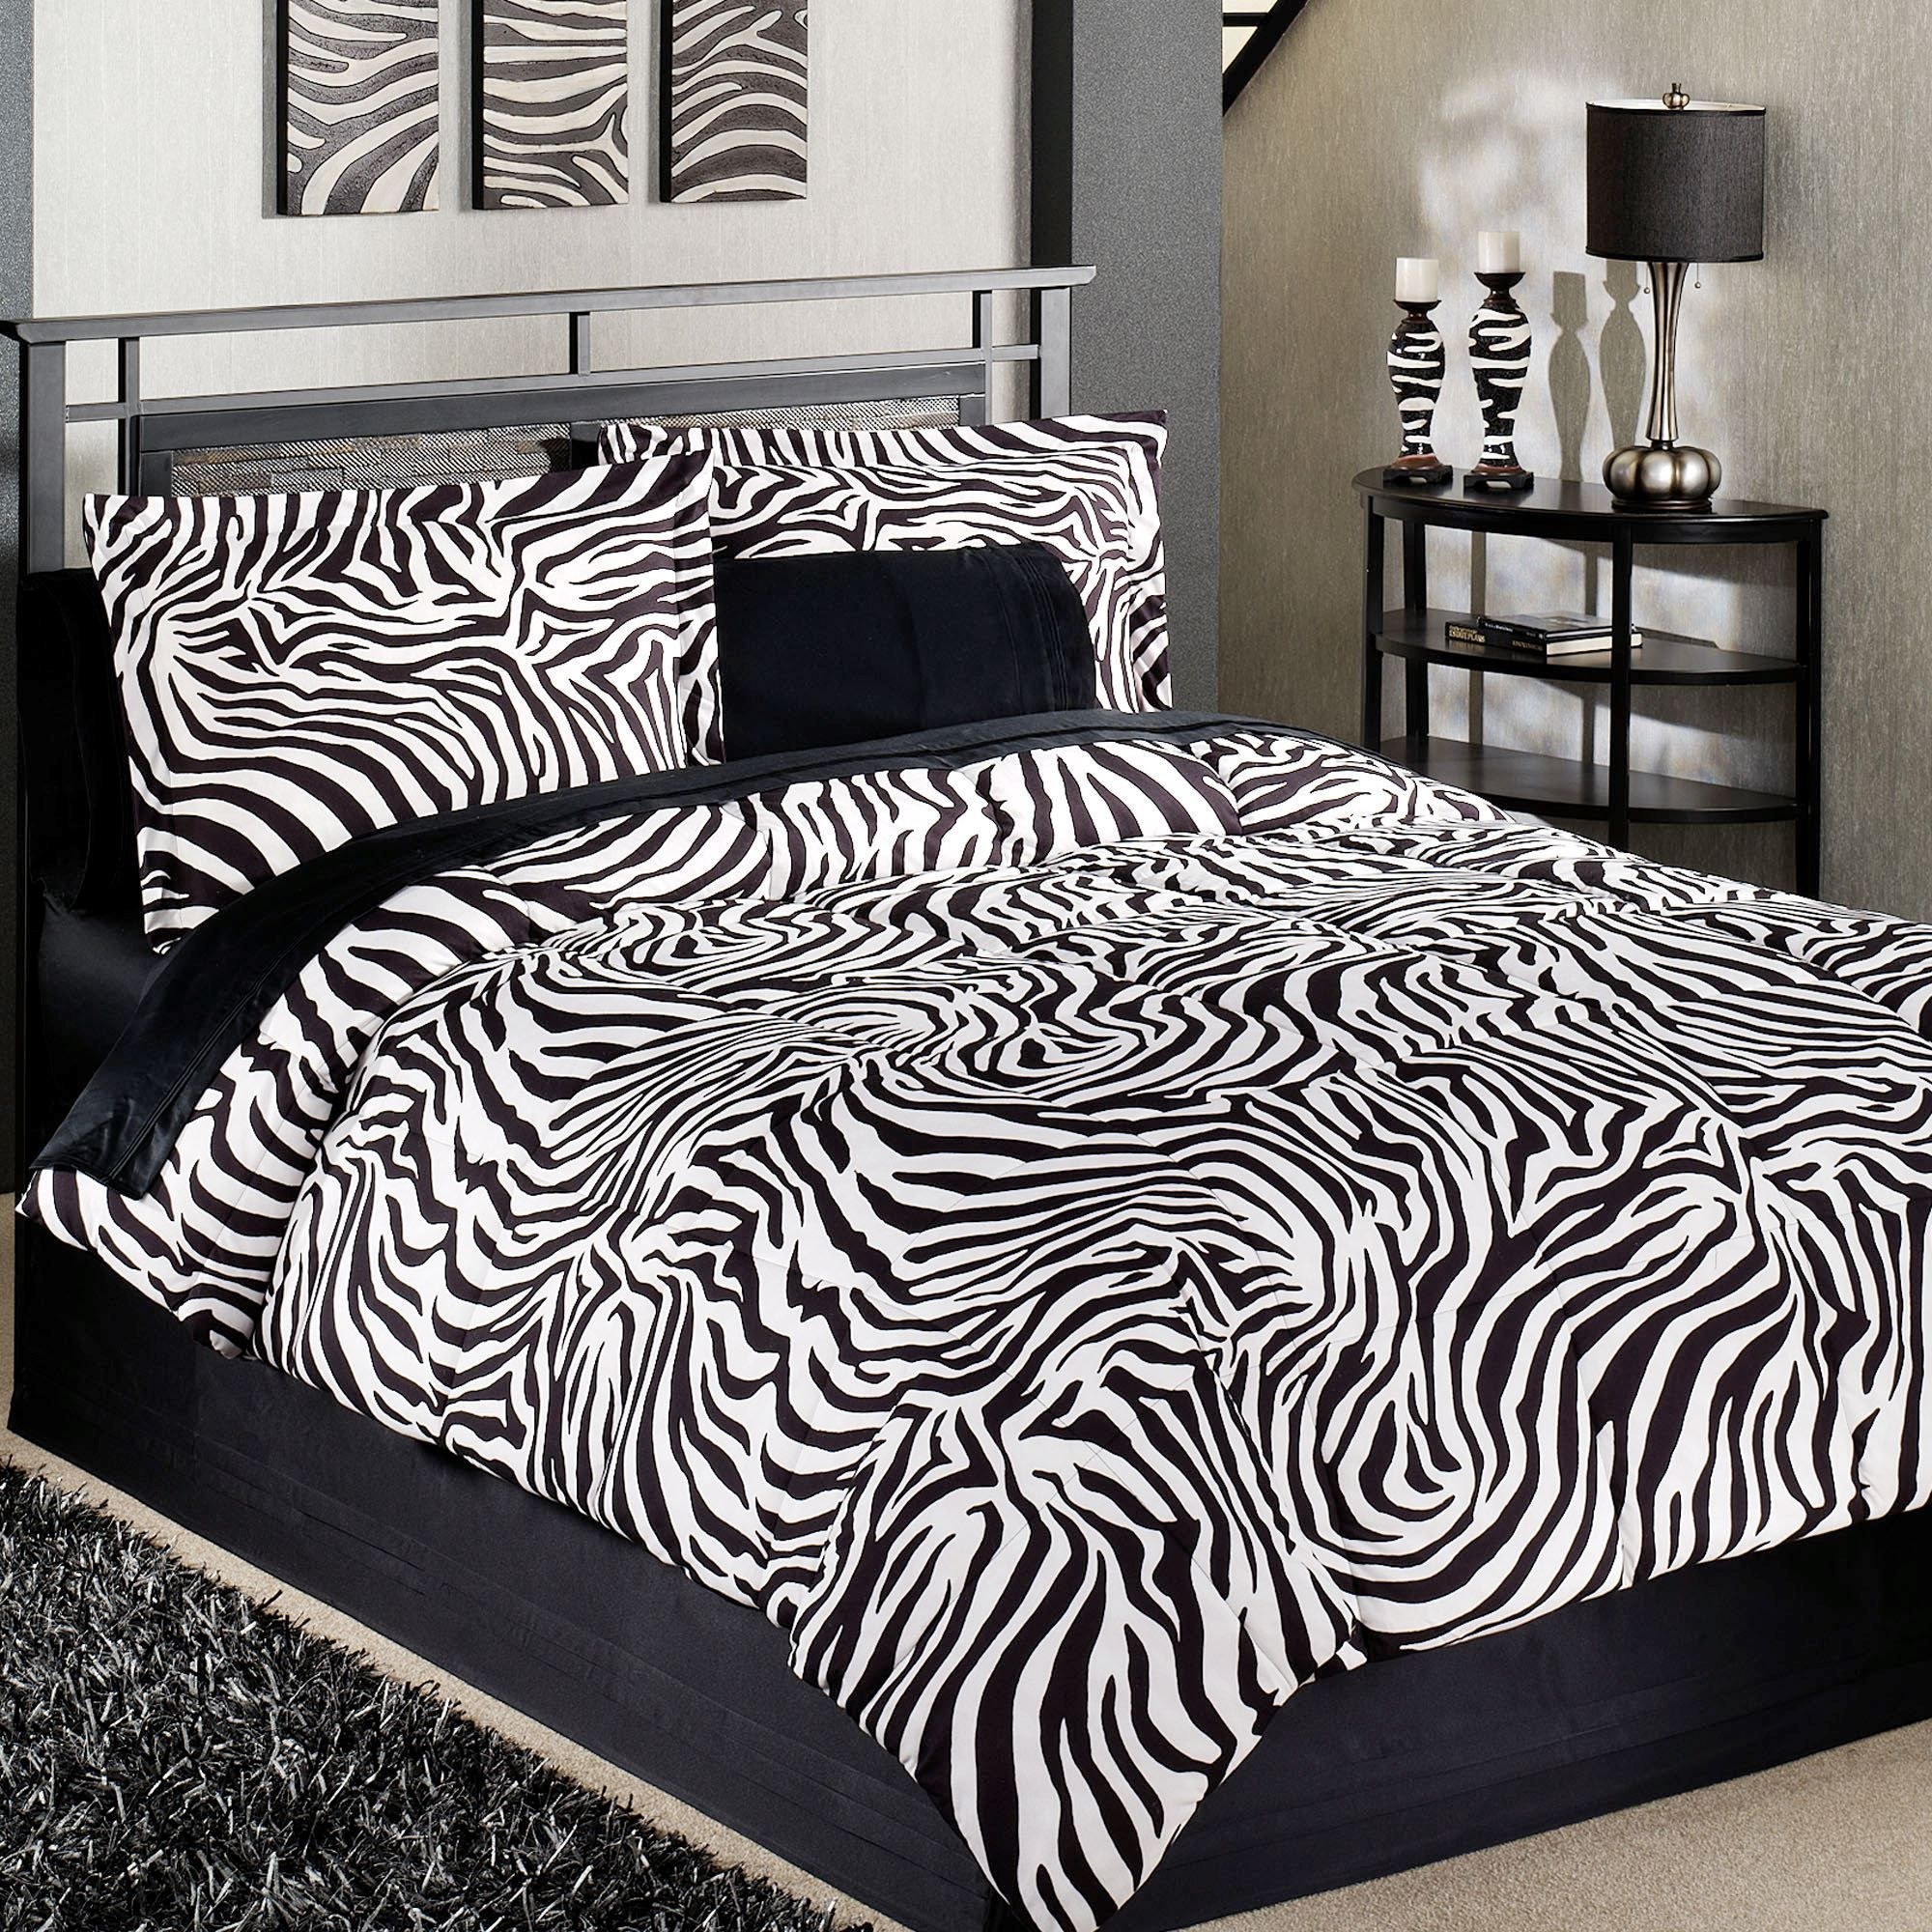 Zebra Bedroom Sets Zebraprintbedding